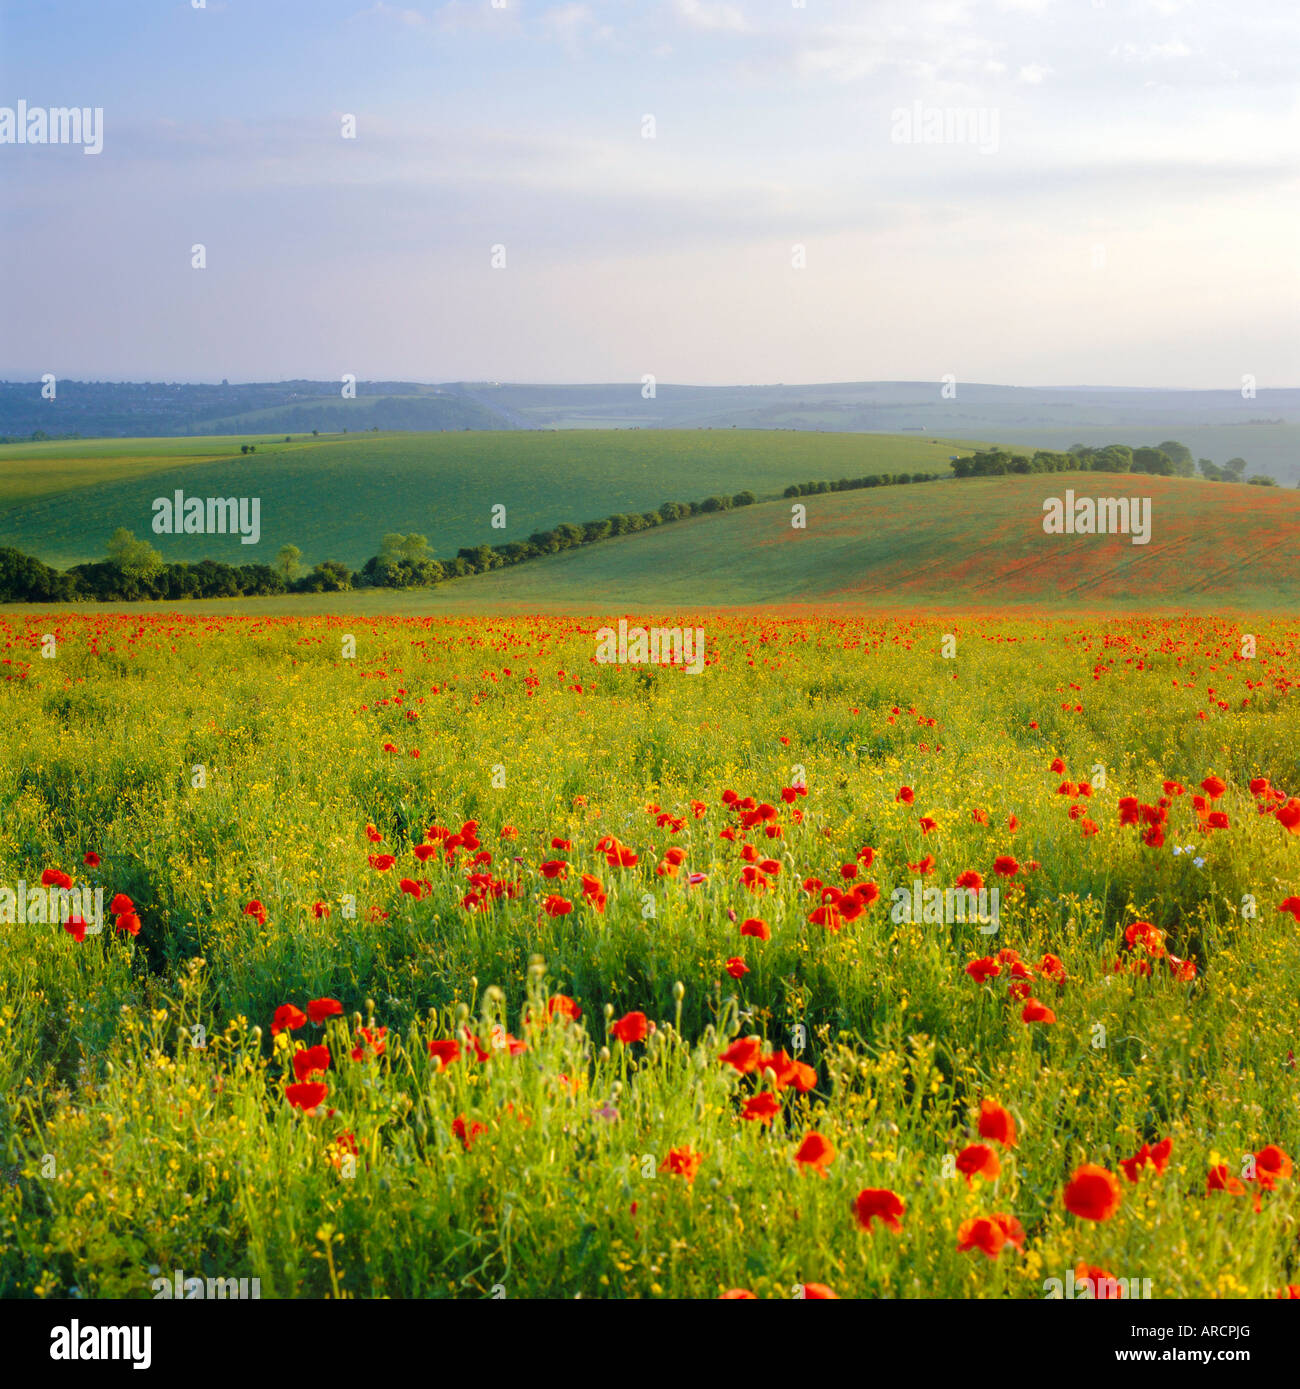 Poppies on the South Downs, Sussex, England - Stock Image